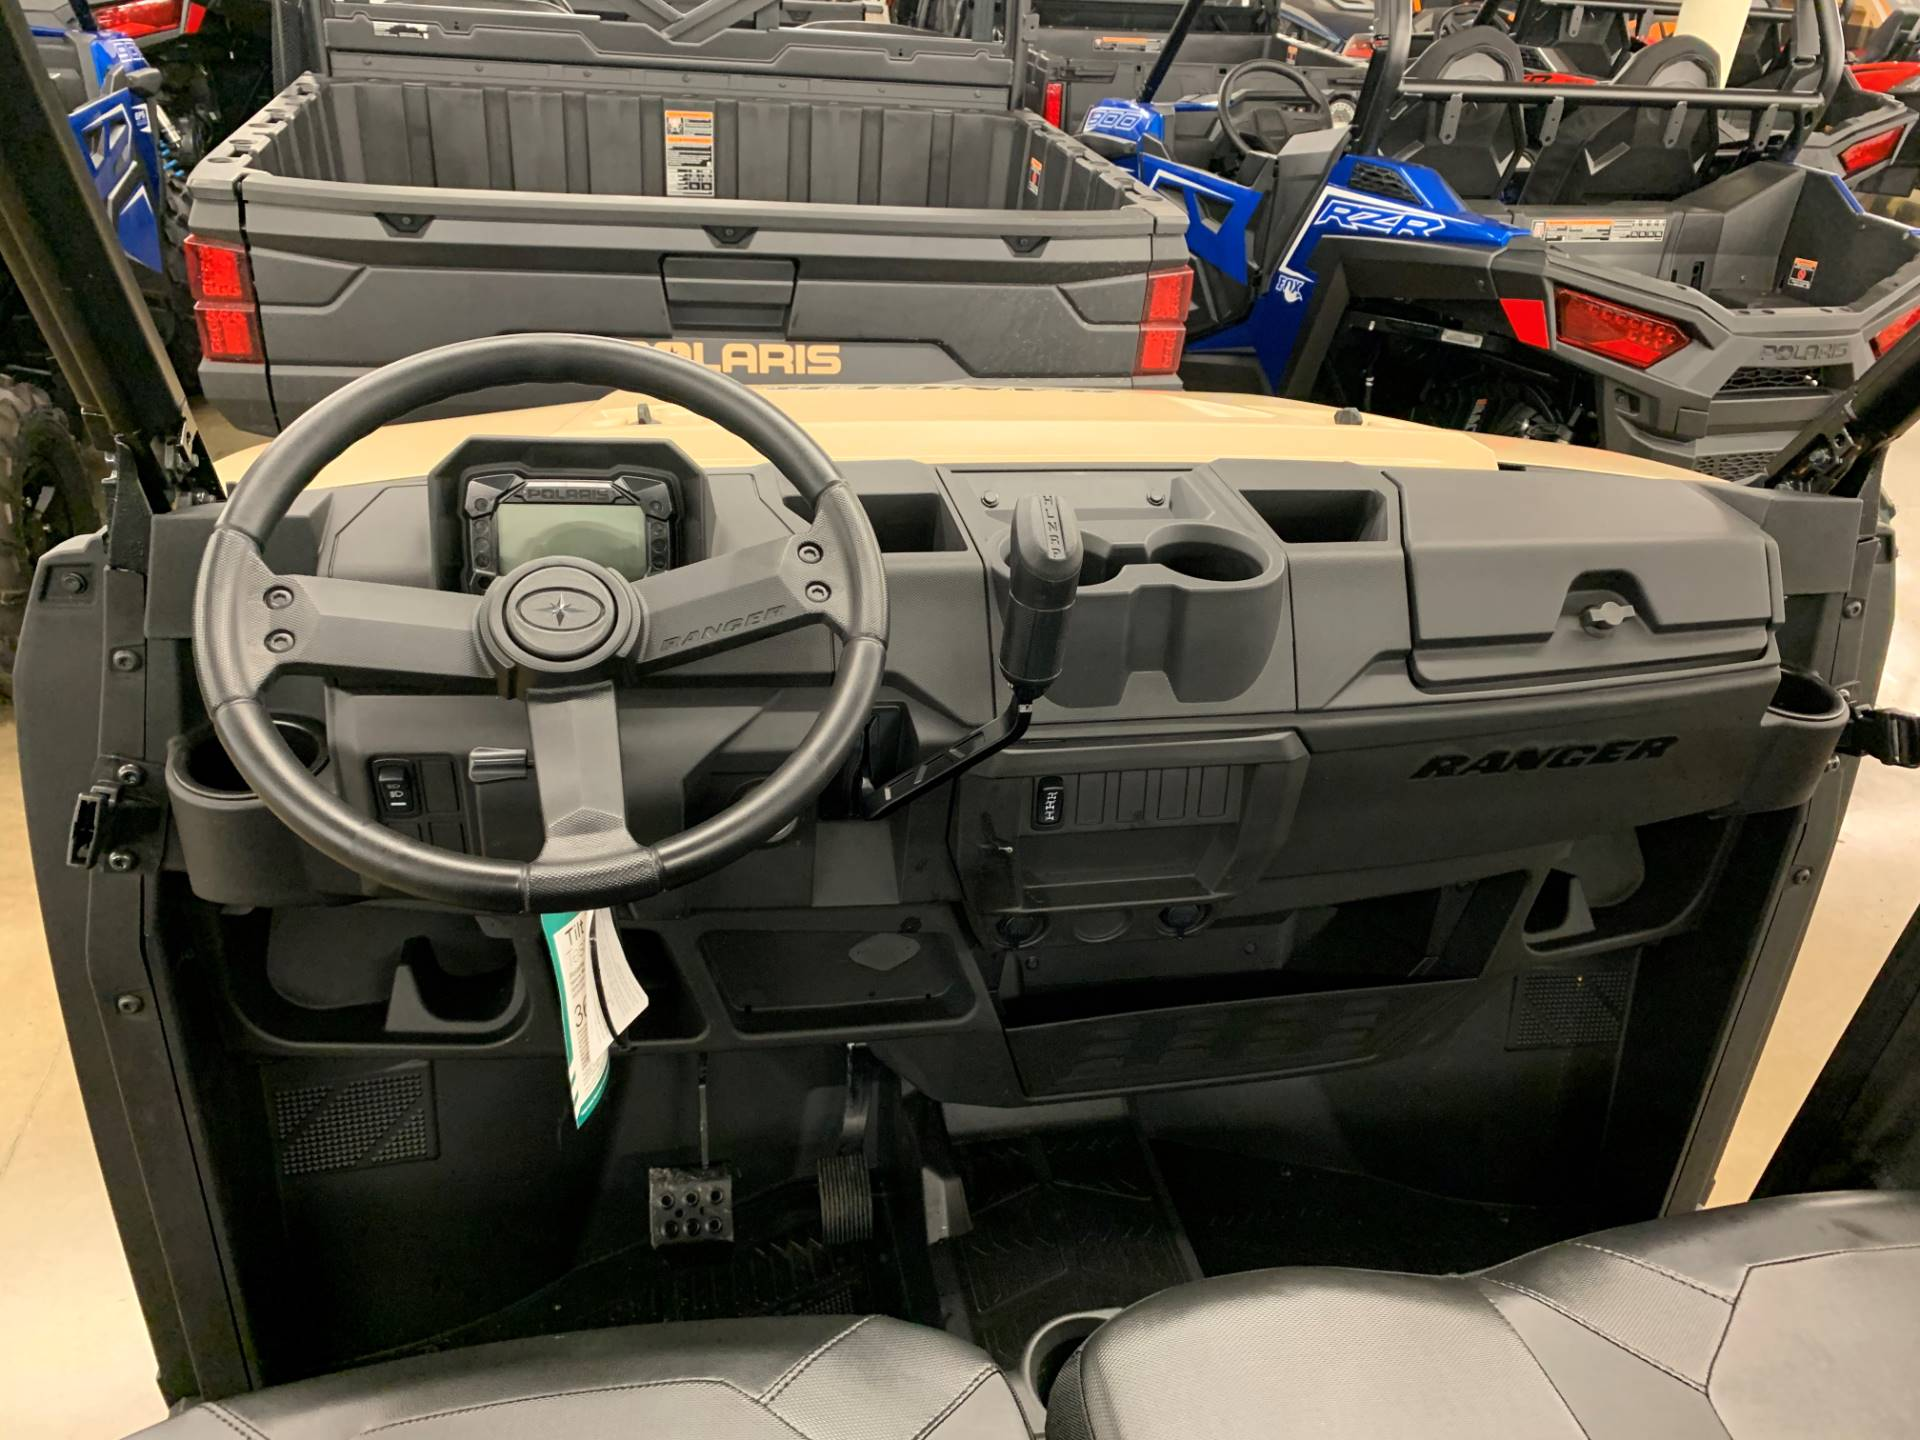 2020 Polaris Ranger 1000 Premium in Chicora, Pennsylvania - Photo 8